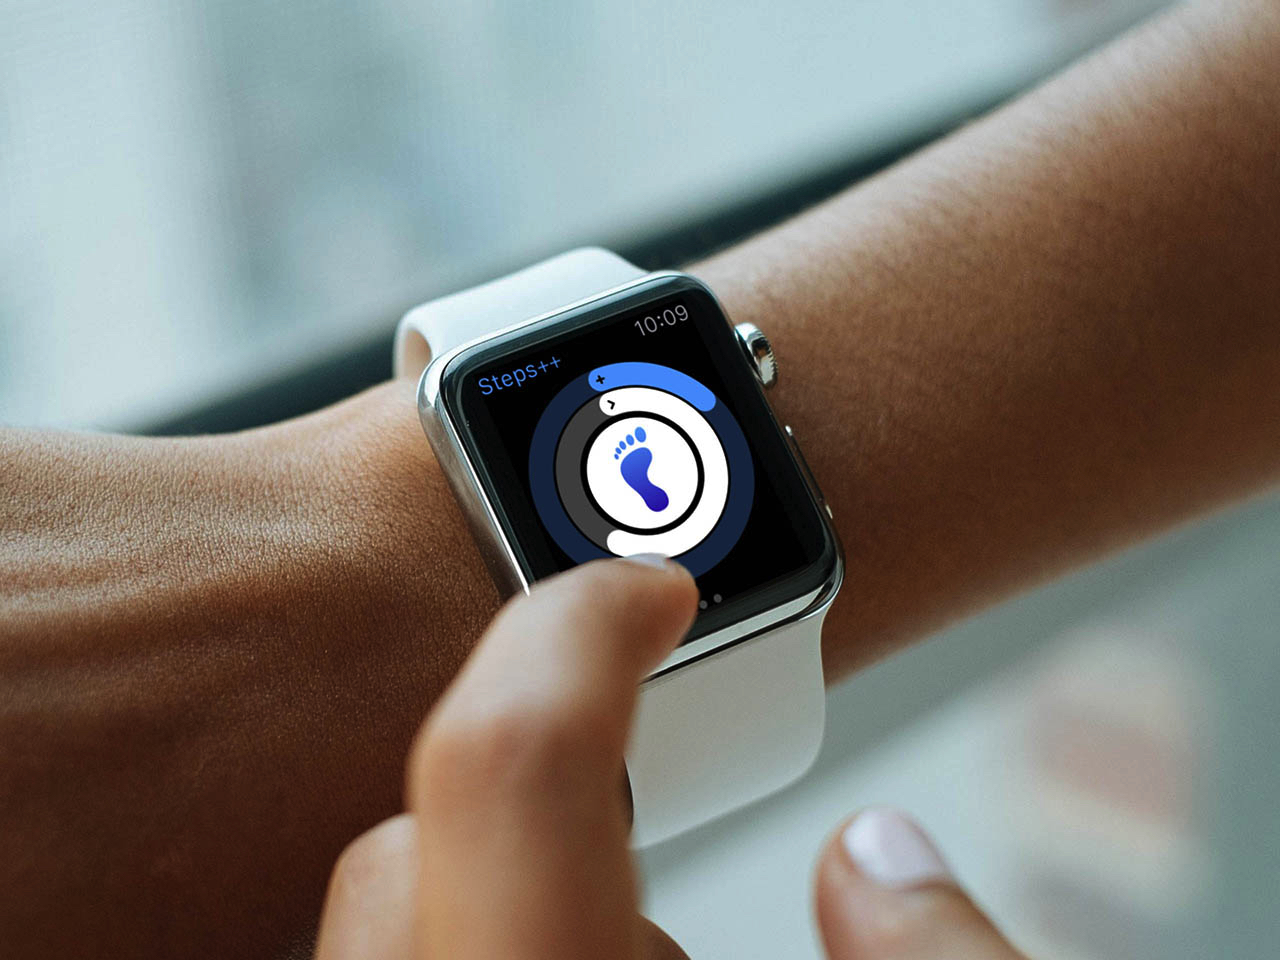 a raised hand showing an apple watch with the steps plus plus app shown on the watch's screen. the app is showing the progress of the wearer's step goals for the day.